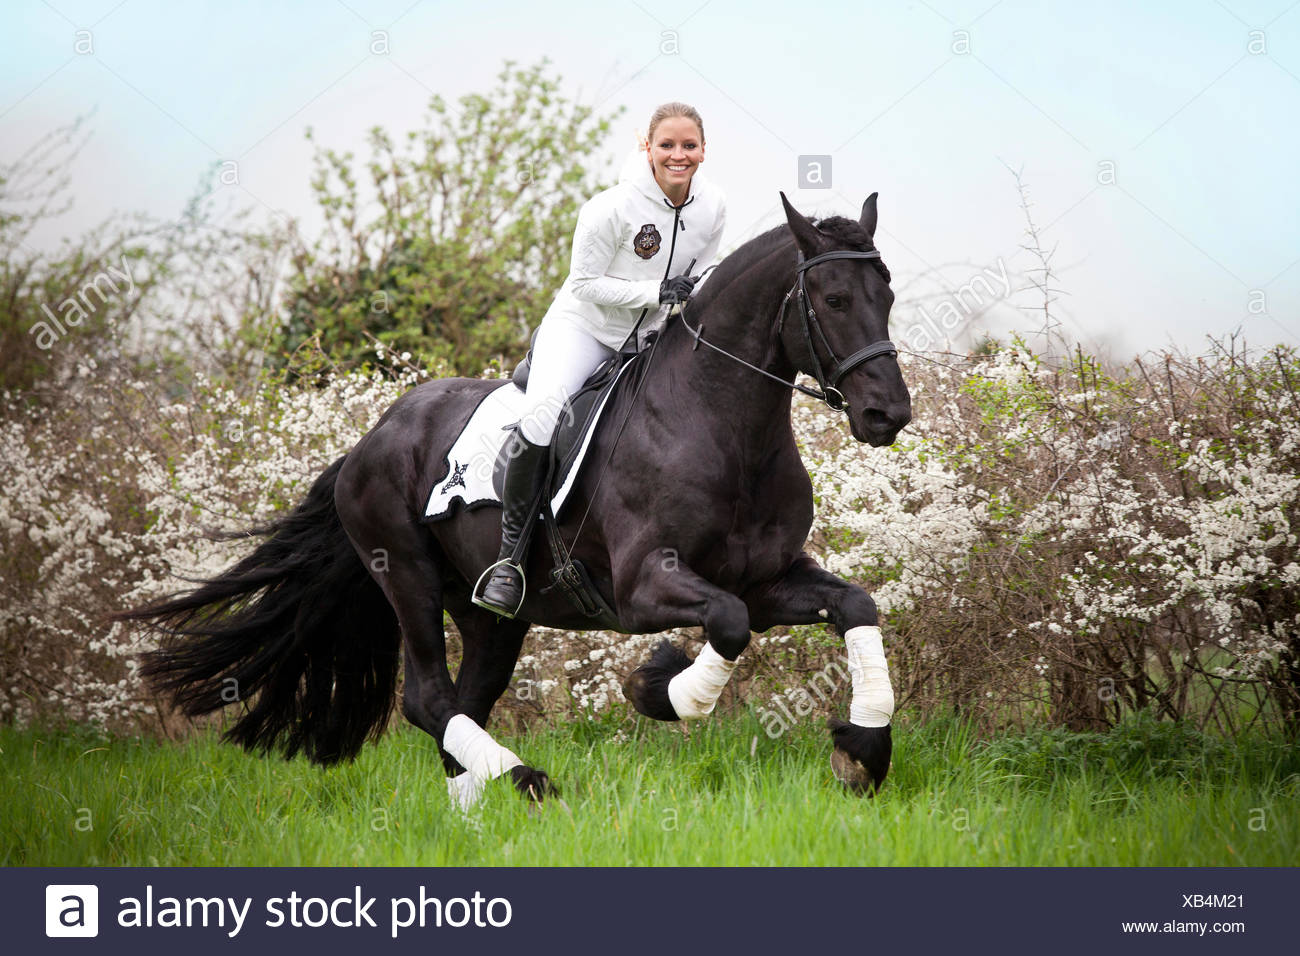 Friesian or Frisian horse, stallion, female rider cantering - Stock Image